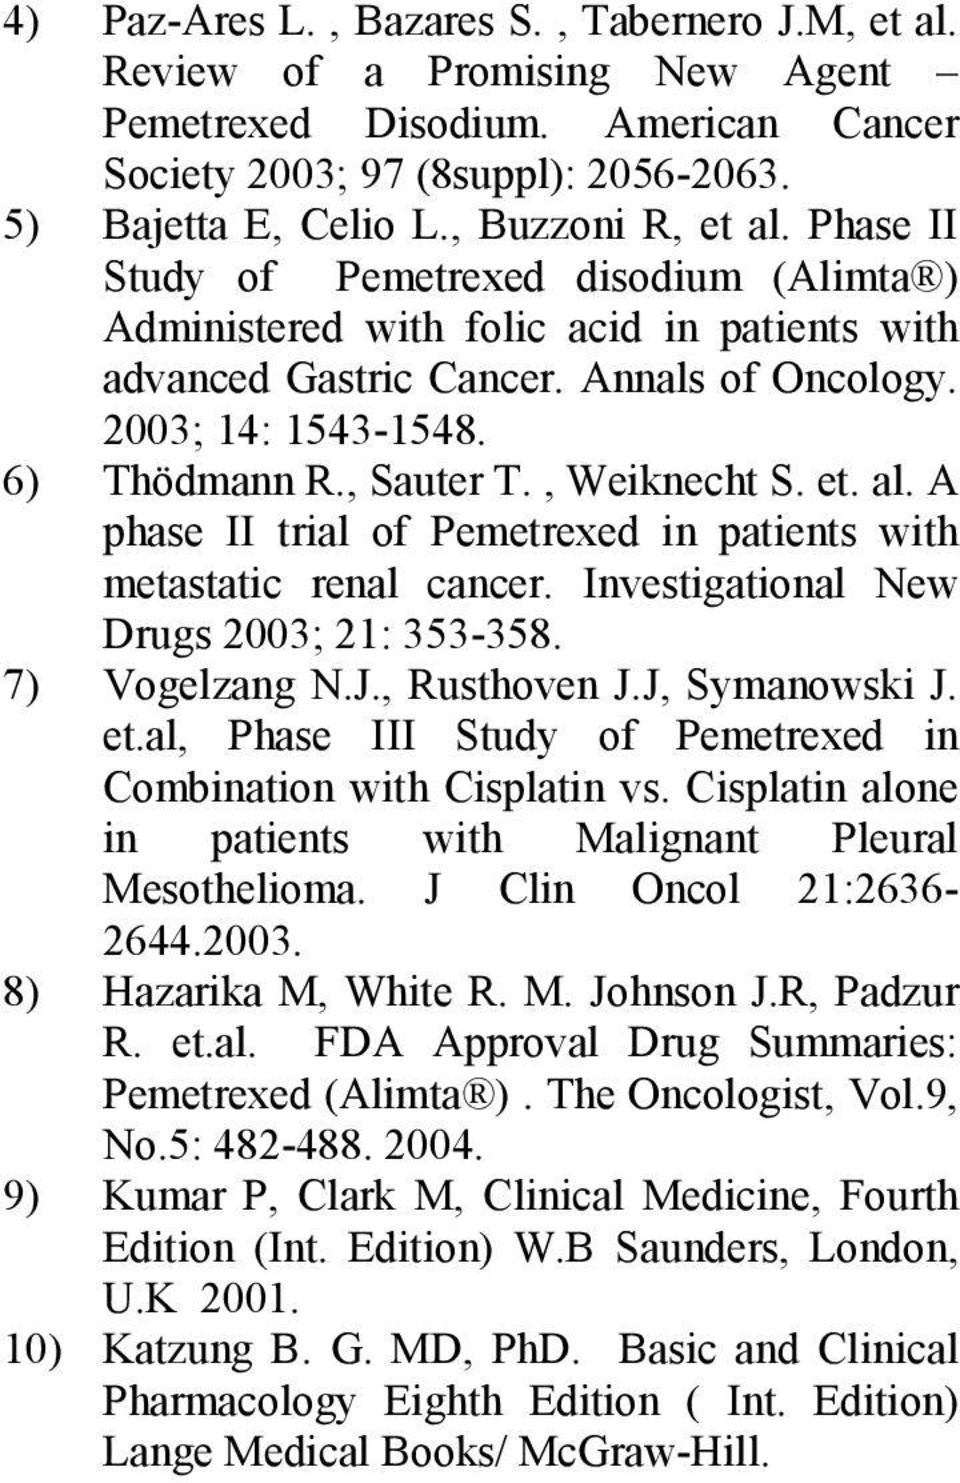 et. al. A phase II trial of Pemetrexed in patients with metastatic renal cancer. Investigational New Drugs 2003; 21: 353-358. 7) Vogelzang N.J., Rusthoven J.J, Symanowski J. et.